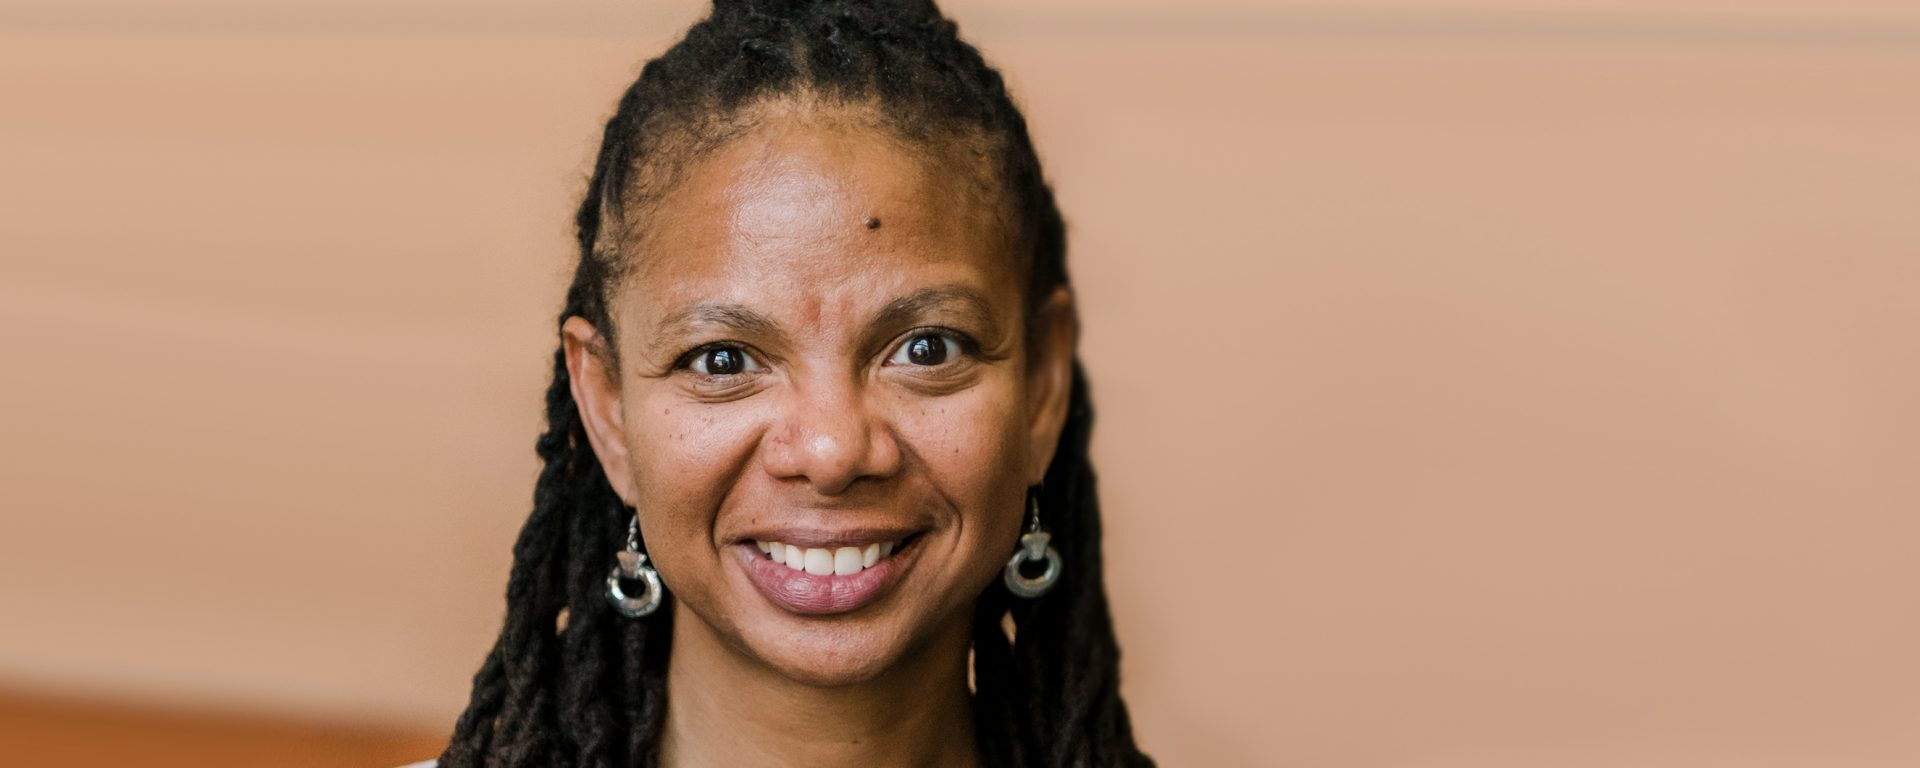 Kimberly Moffitt appointed interim dean of UMBC's College of Arts, Humanities, and Social Sciences